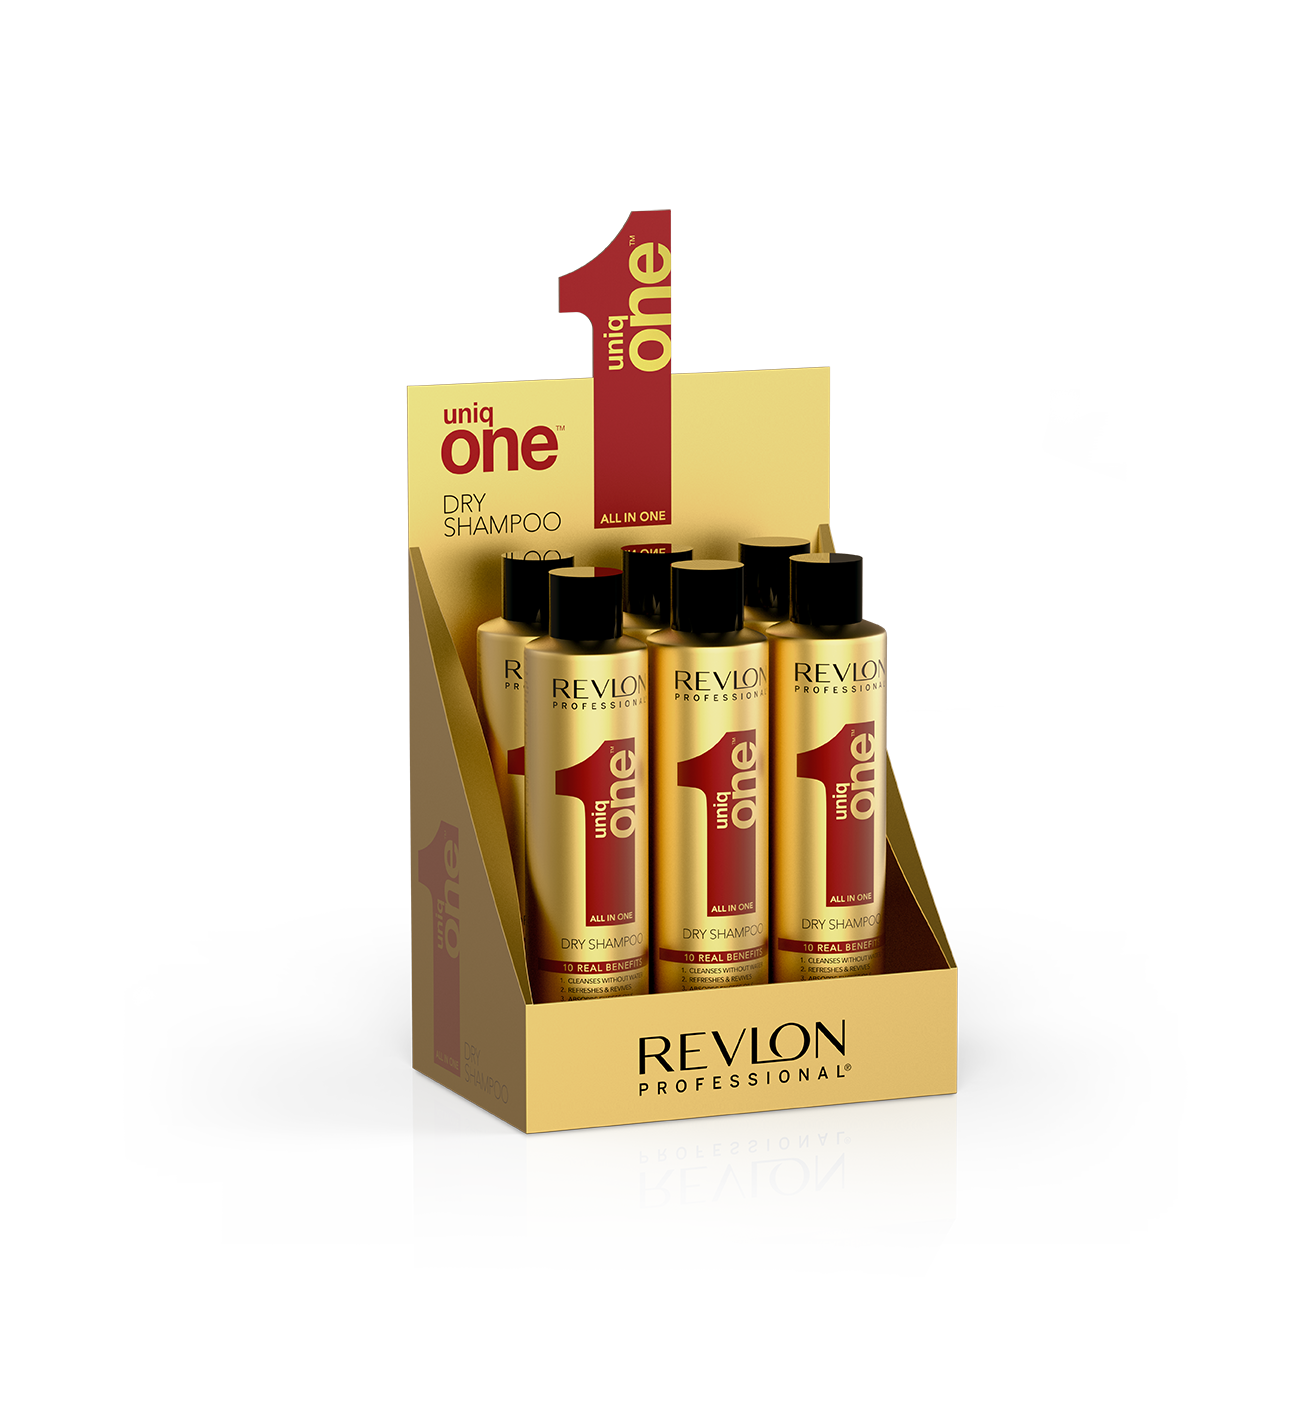 REVLON Professional Набор сухих шампуней / UNIQ ONE DRY SHAMPOO 6*300 мл revlon professional uniq one all in one conditioning shampoo 6 300 мл